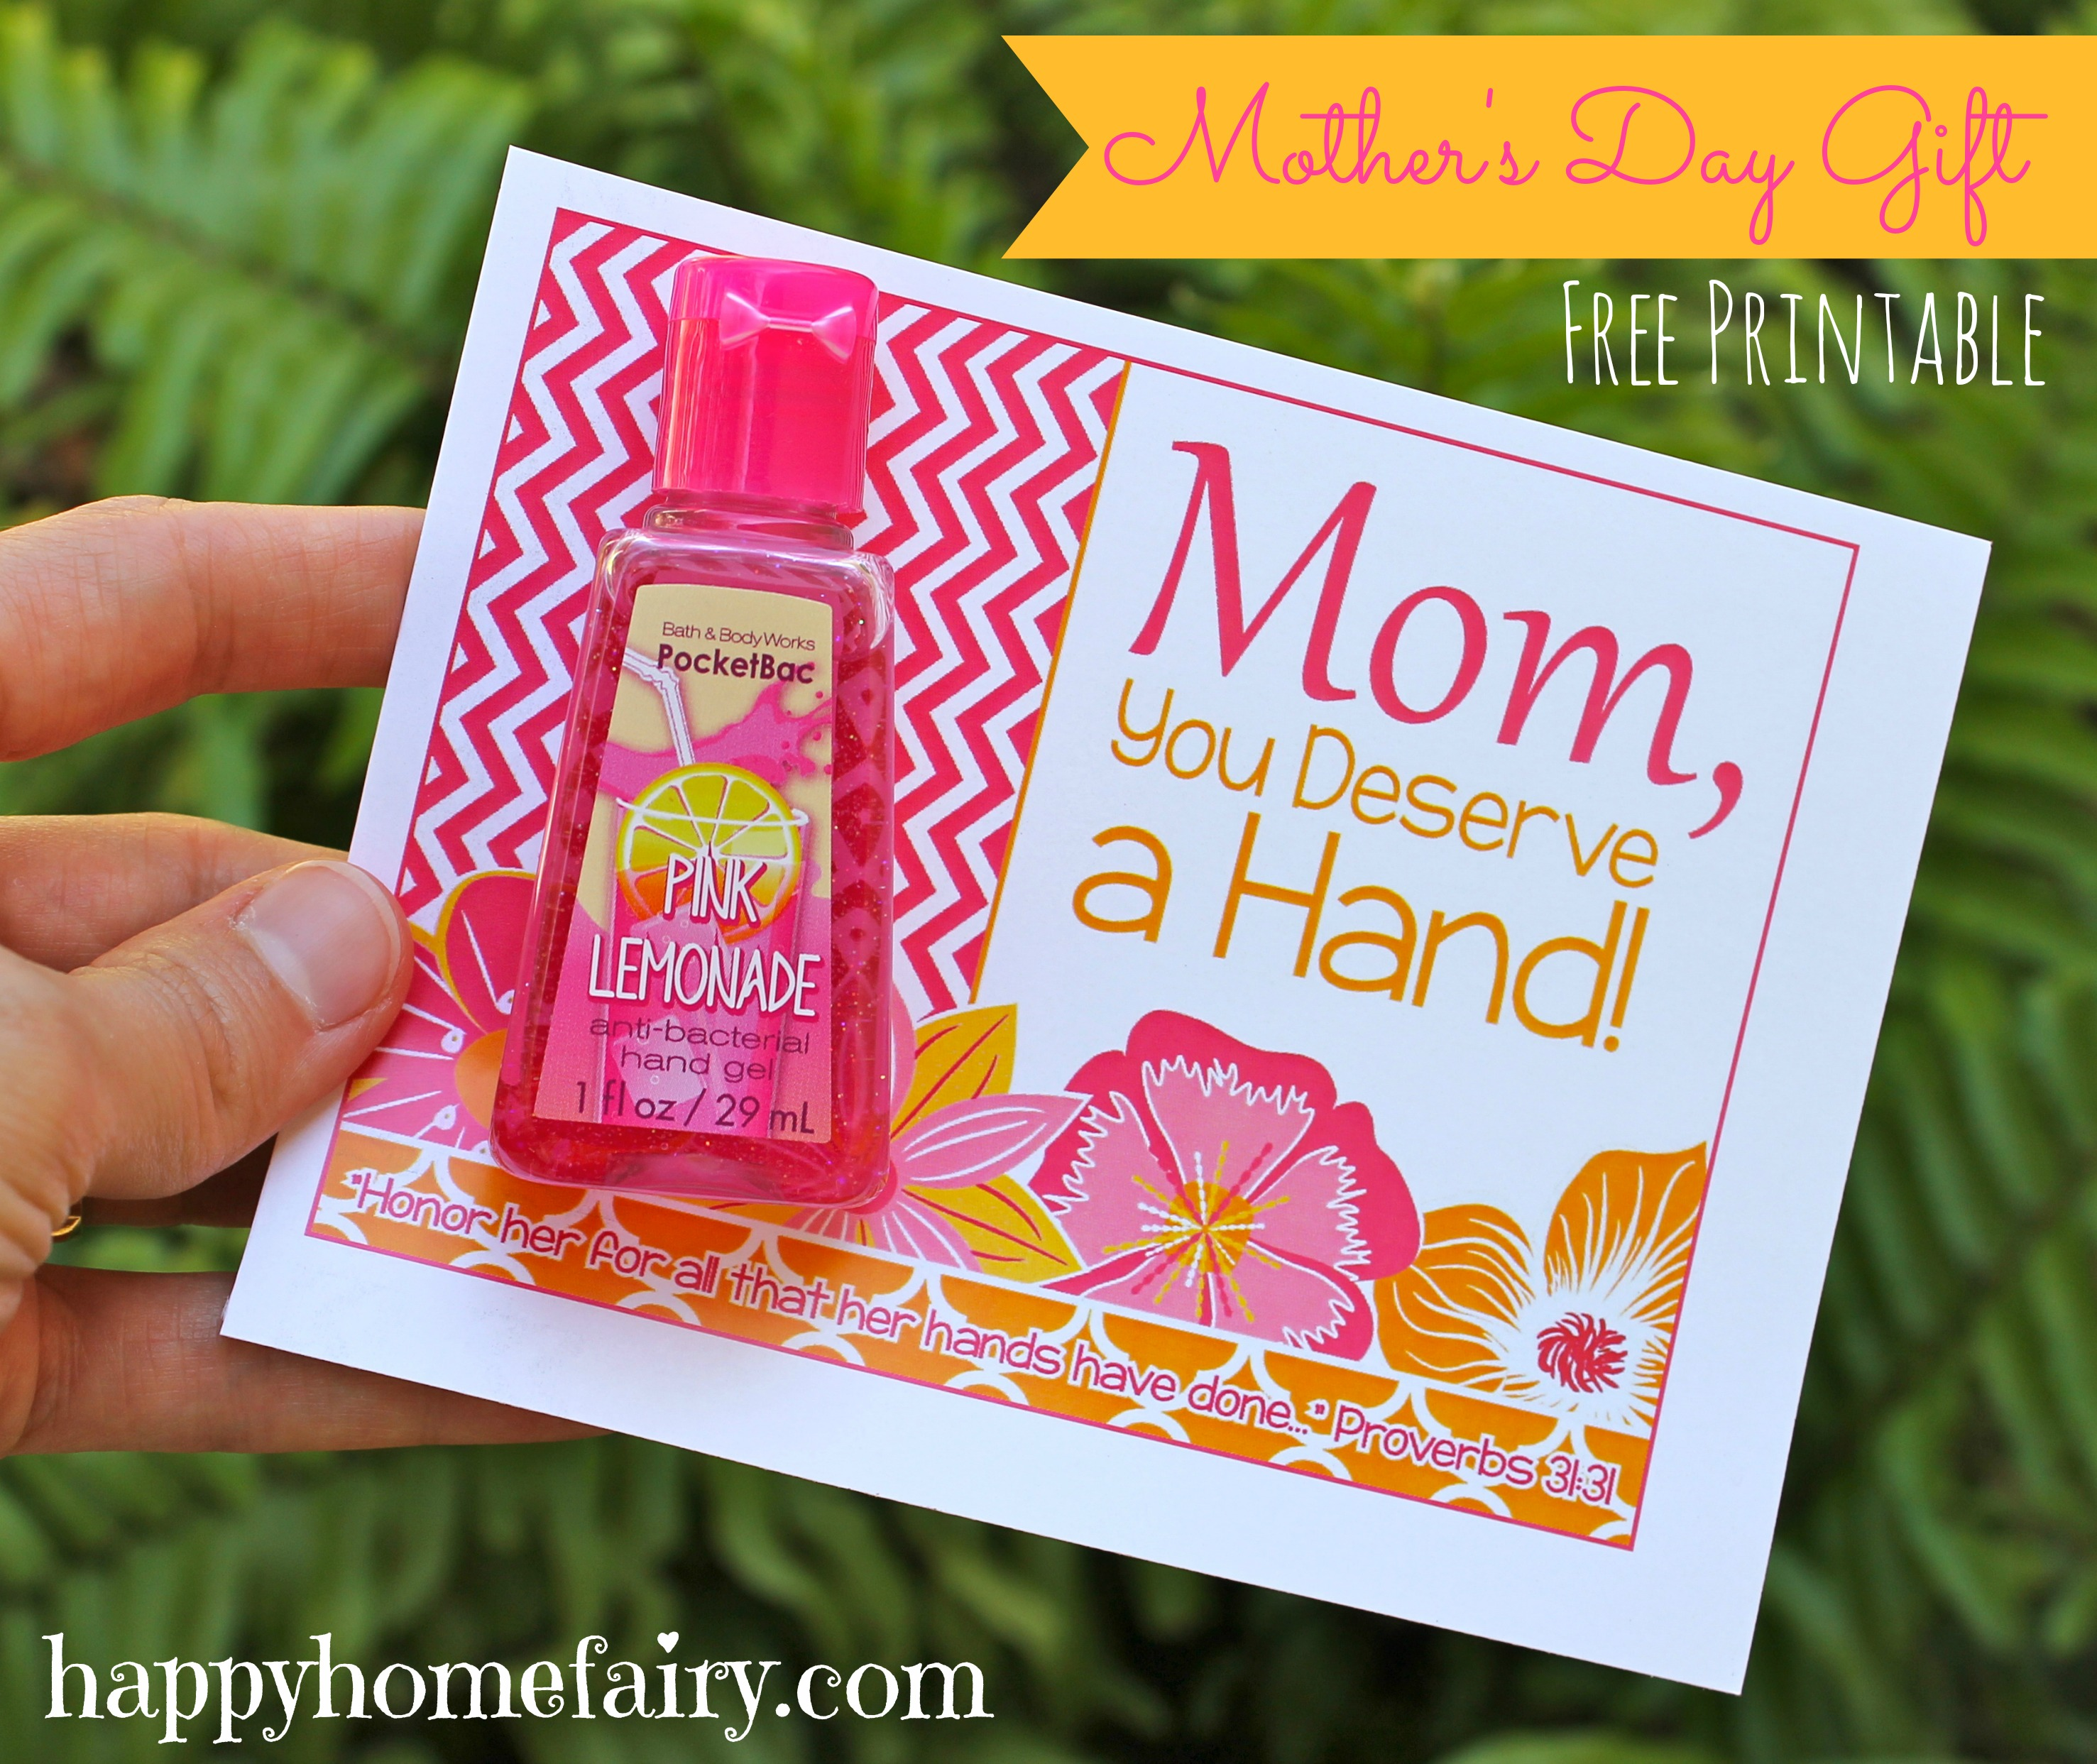 Easy Mother's Day Gift Idea - FREE Printable! - Happy Home